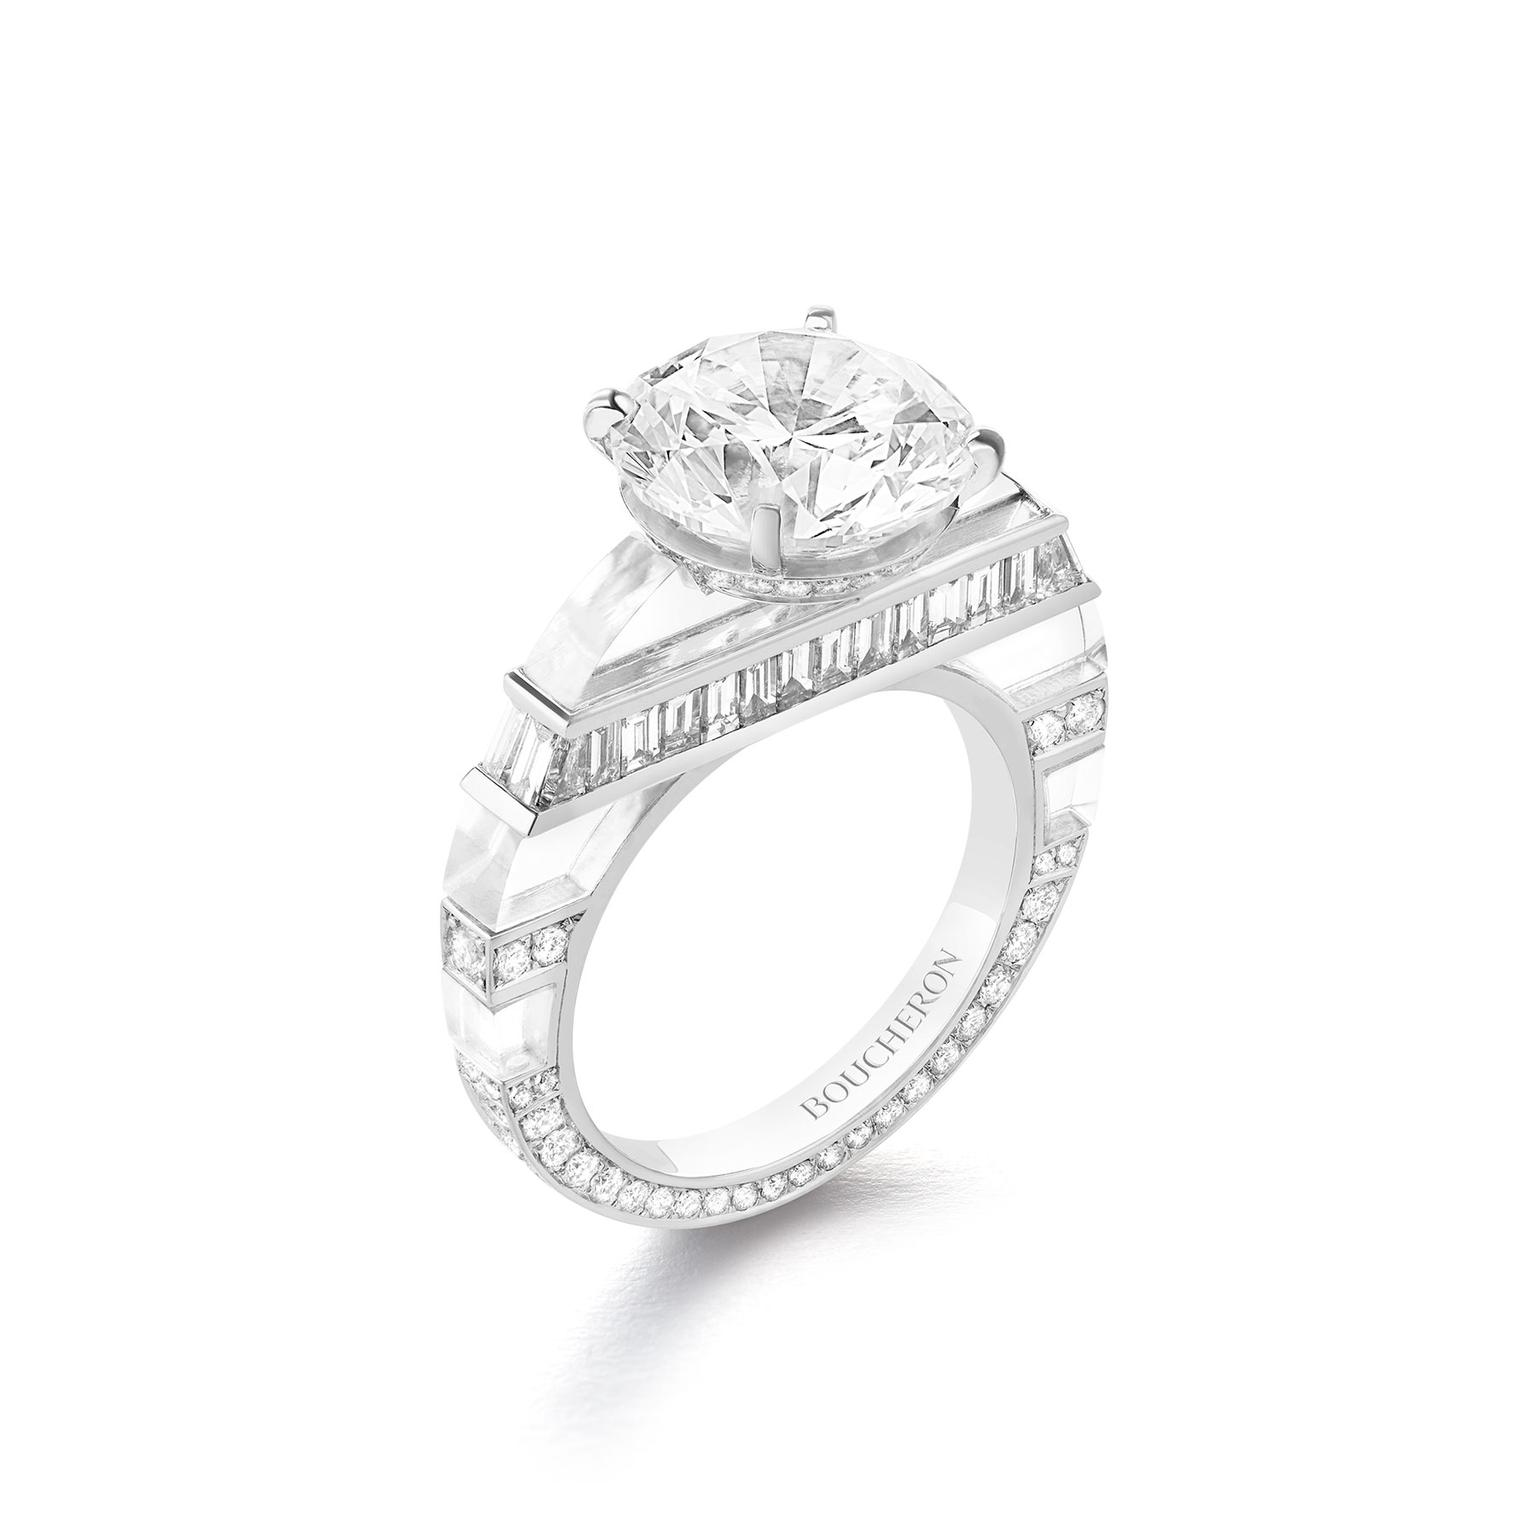 Boucheron Hiver Impérial Givre ring